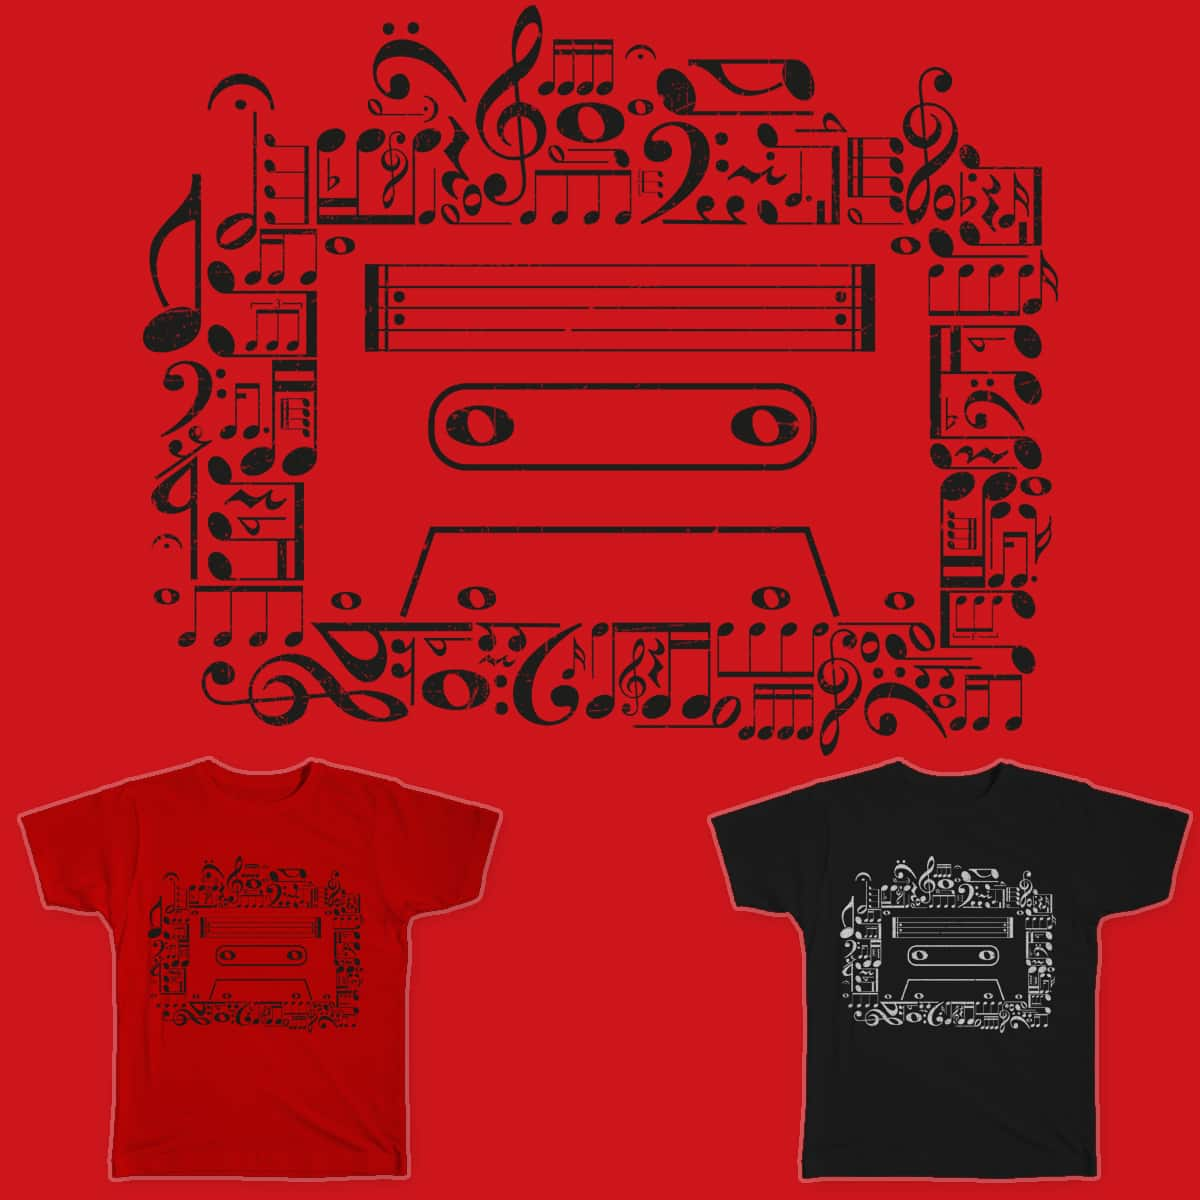 What Makes A Cassette by Flower Bean on Threadless